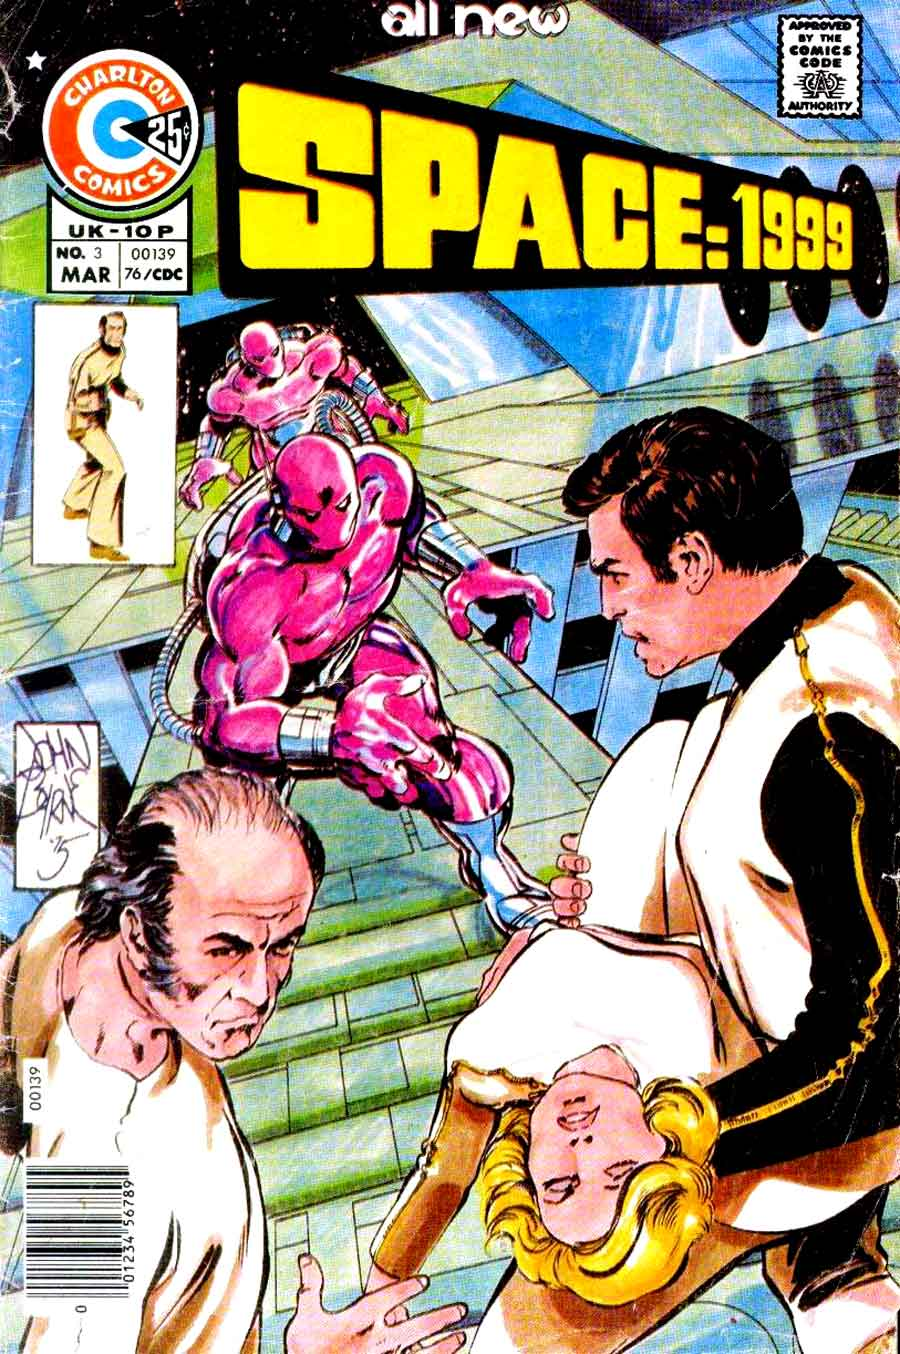 Space 1999 v1 #3 chalrton bronze age comic book cover art by John Byrne